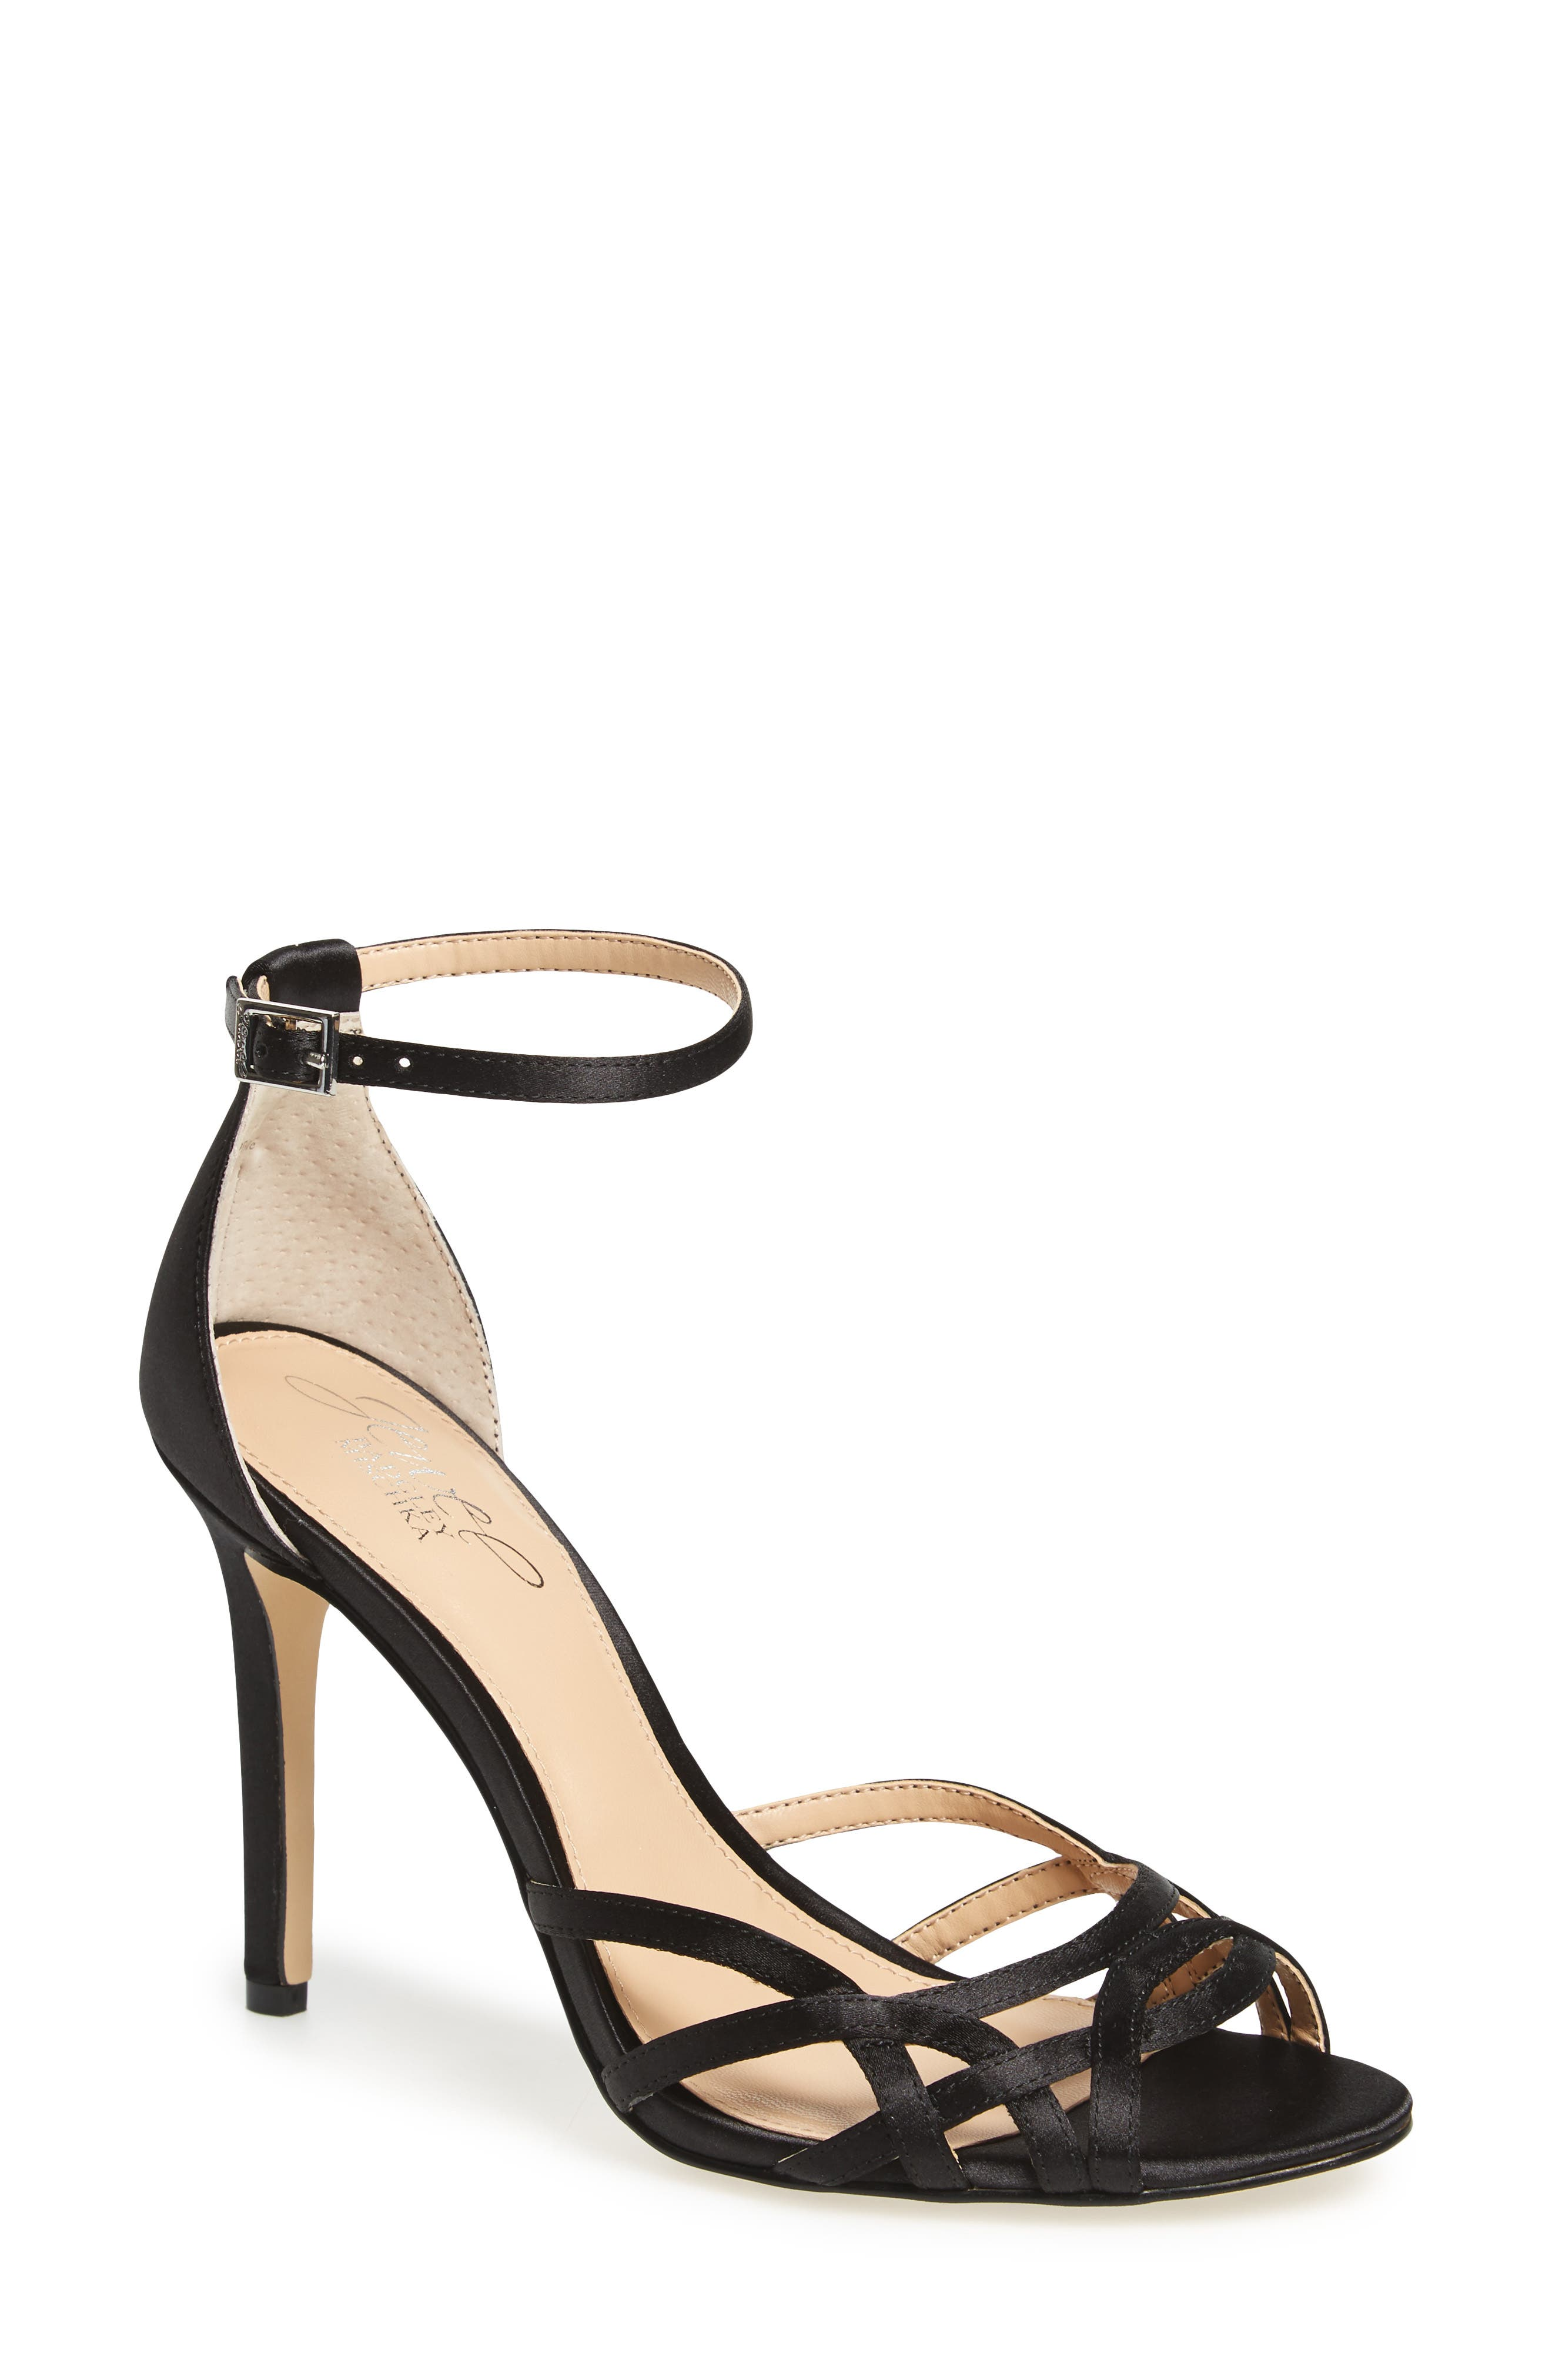 JEWEL BADGLEY MISCHKA, Haskell II Strappy Sandal, Main thumbnail 1, color, 015